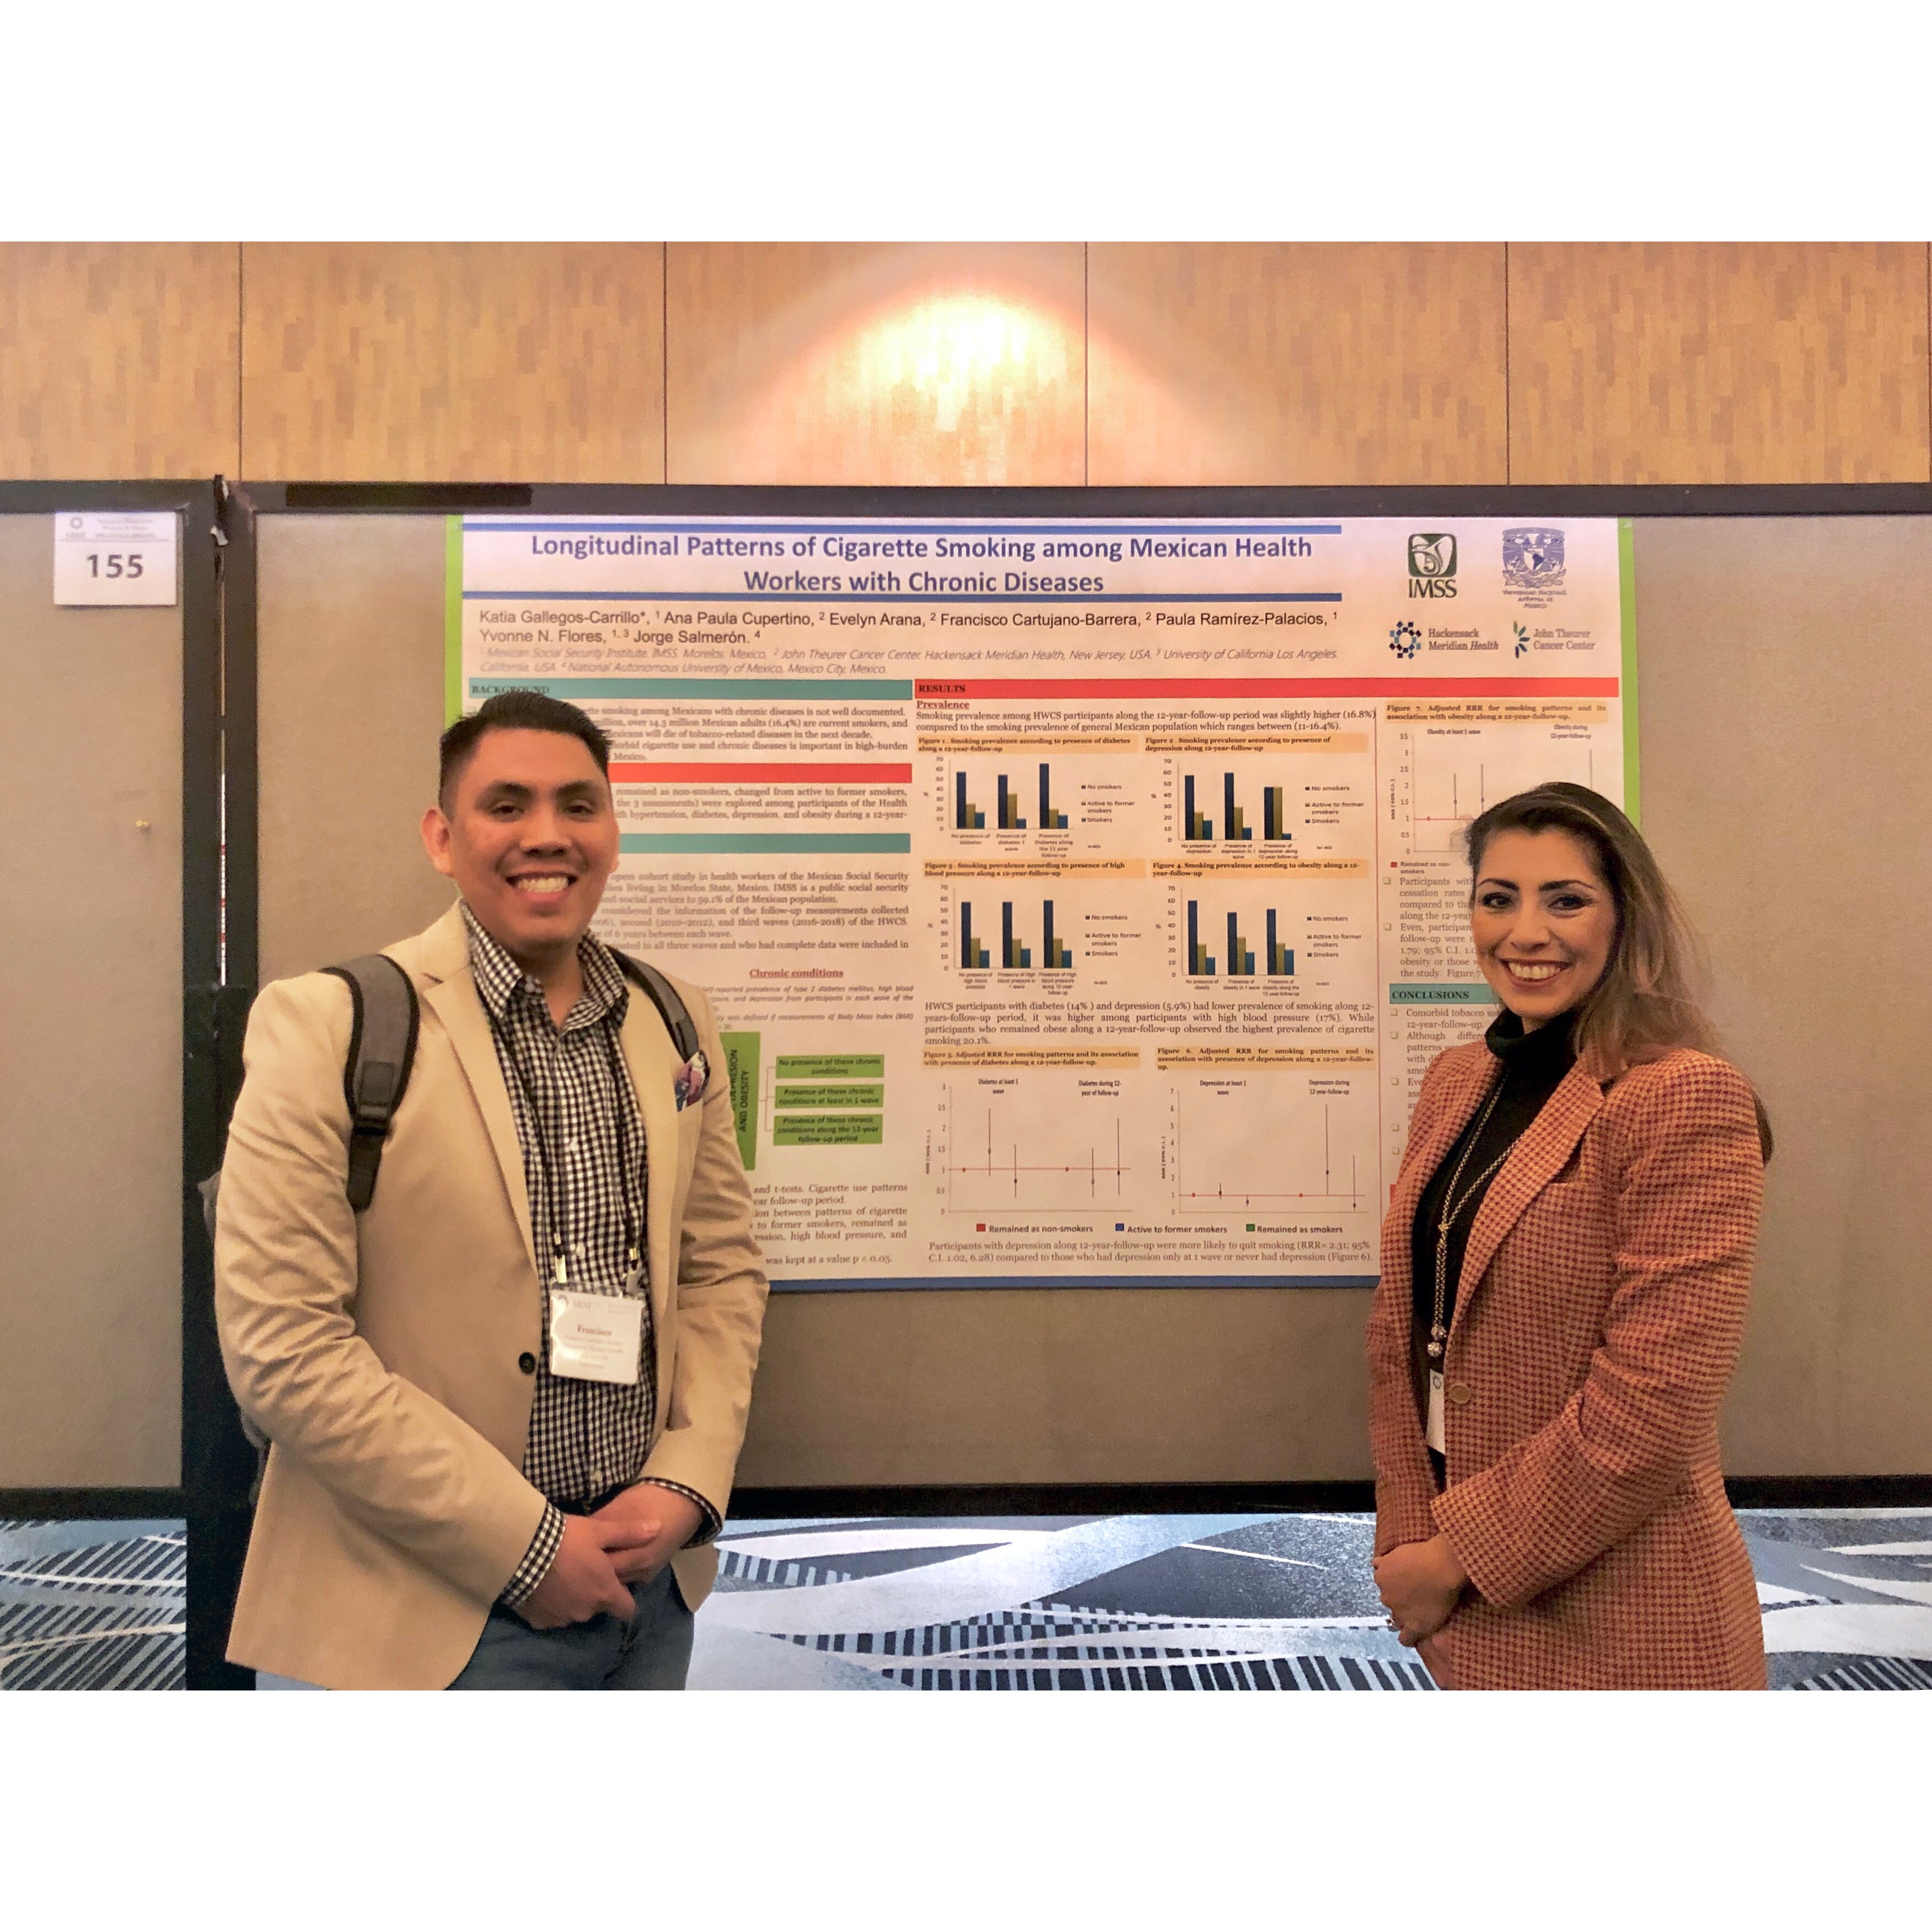 """Drs. Cartujano-Barrera and Gallegos presenting """"Longitudinal Patterns of Cigarette Smoking among Mexican Health Workers with Chronic Diseases"""" at the 2019 Society for Research on Nicotine & Tobacco Annual Meeting."""